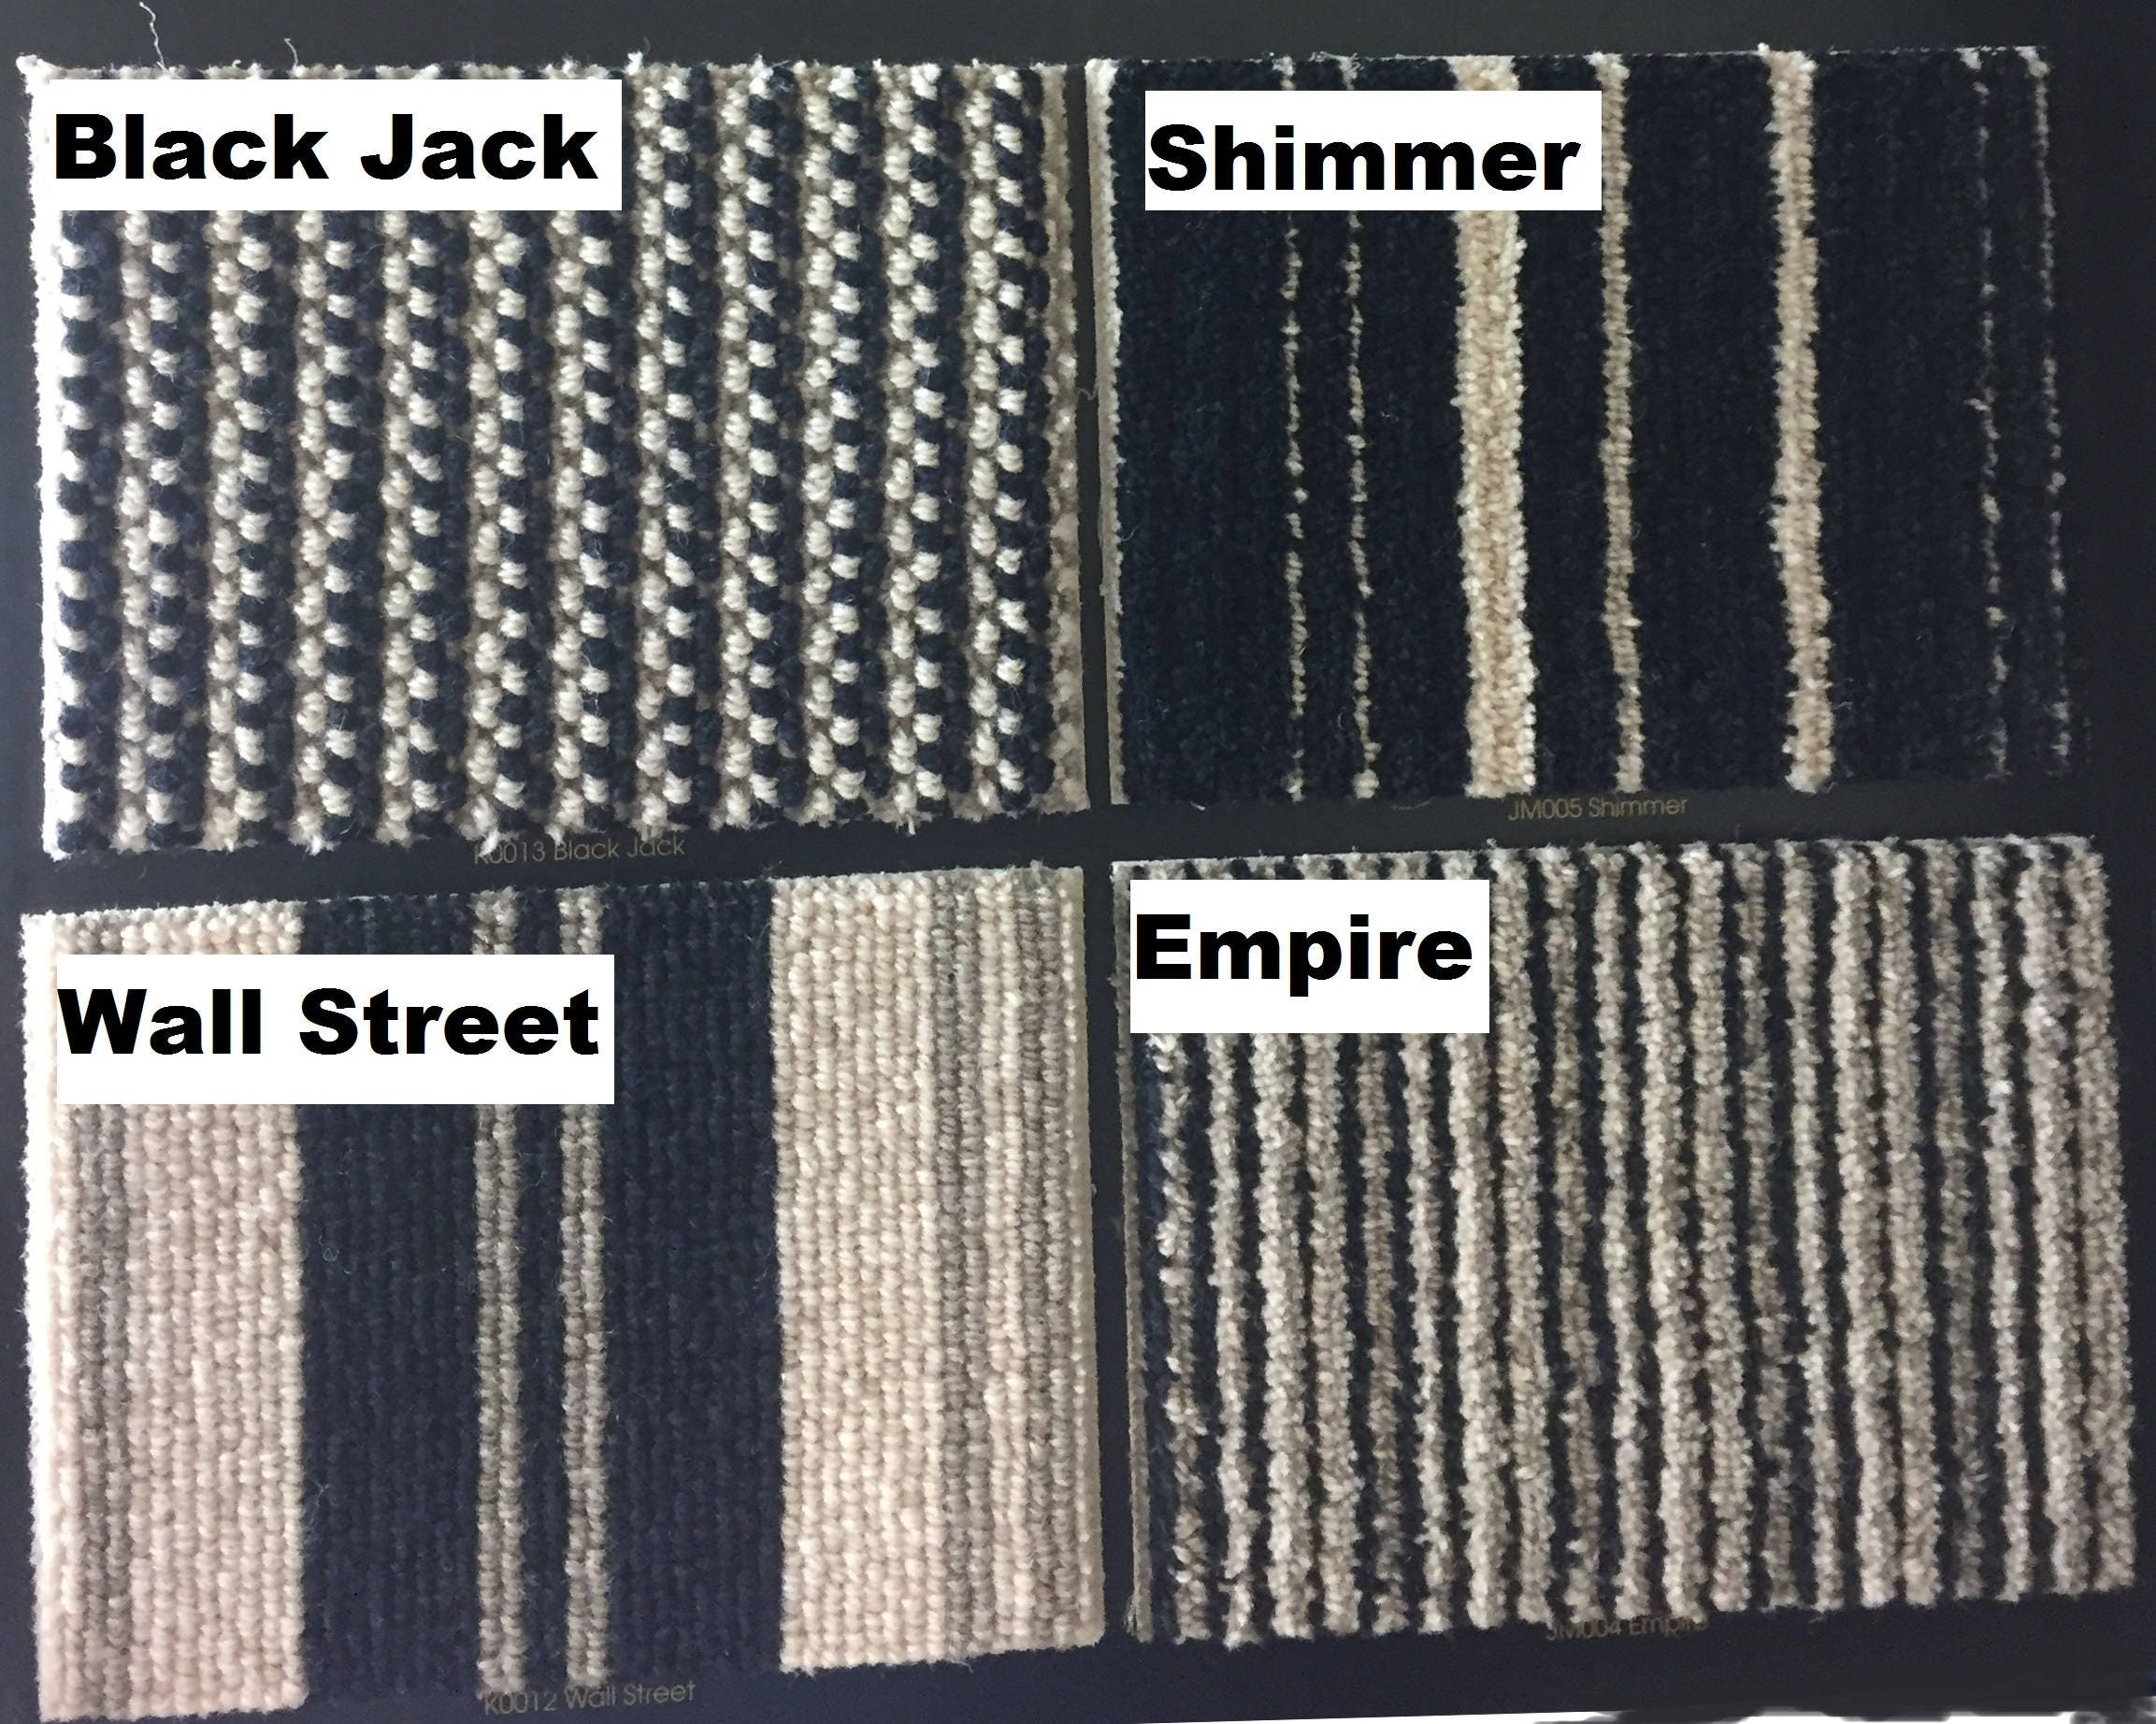 Blackjack Empire Shimmer Amp Wall Street Made With Jmish